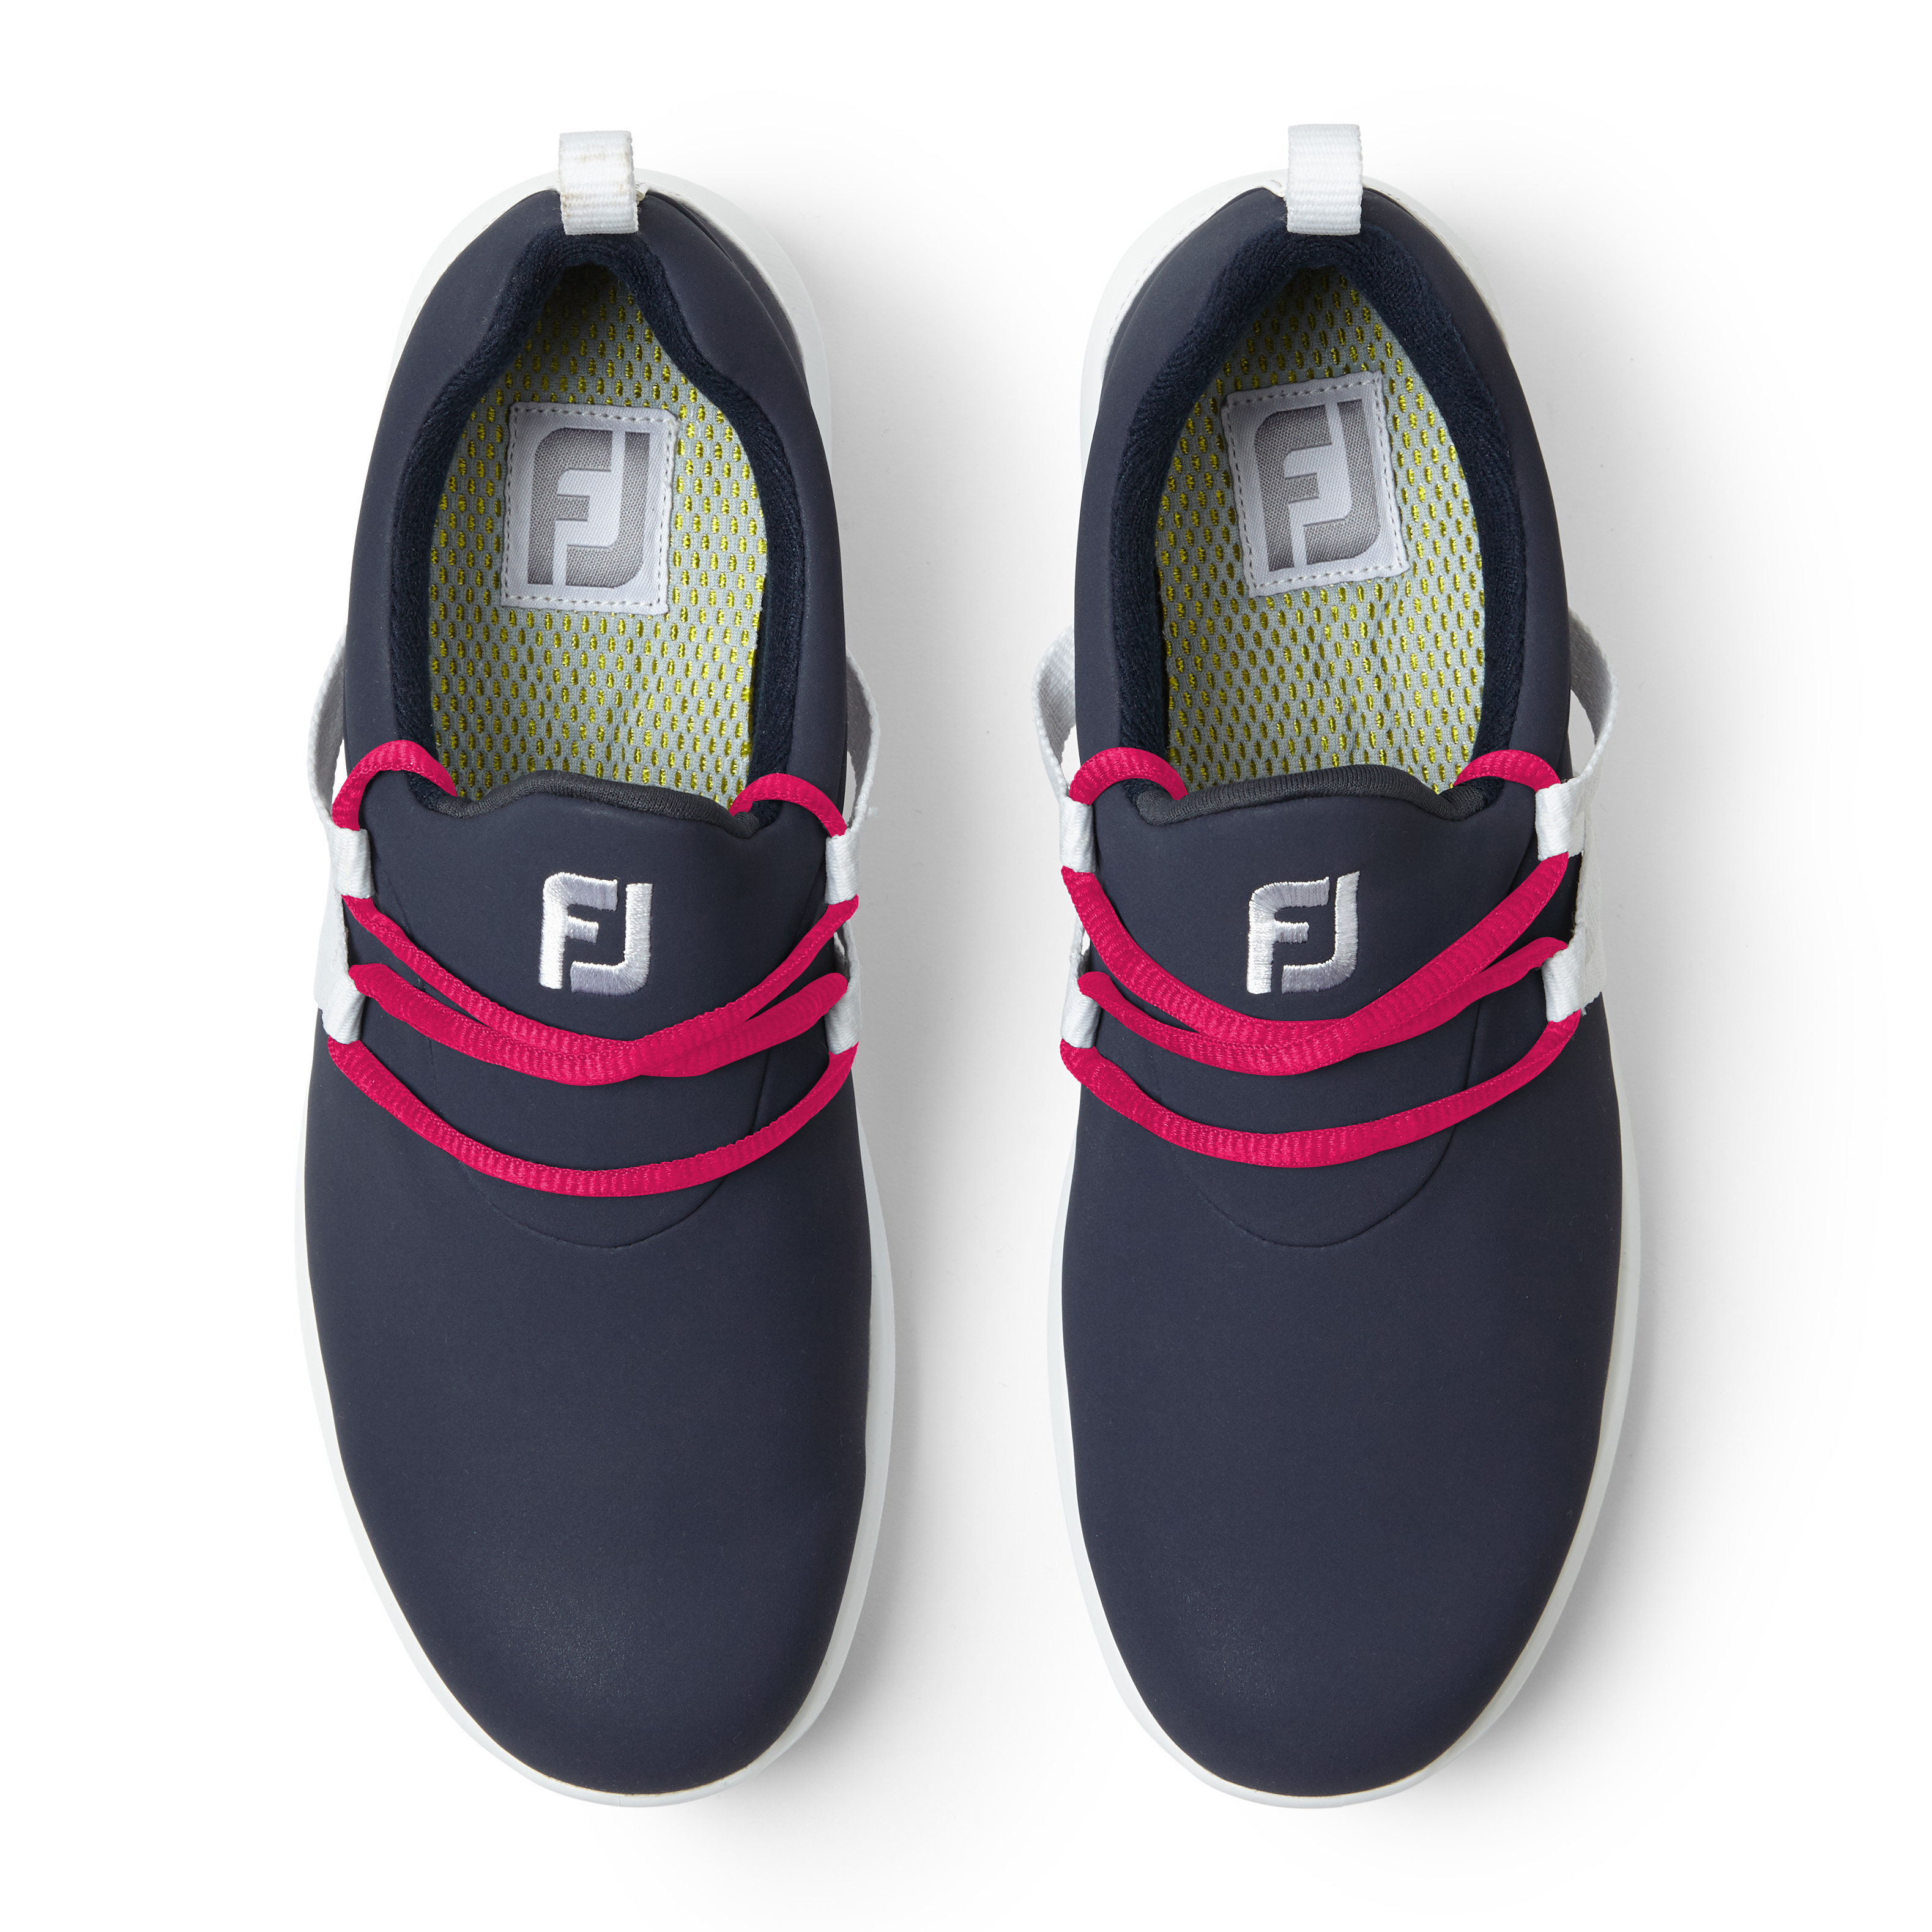 FootJoy Leisure Slip On 3